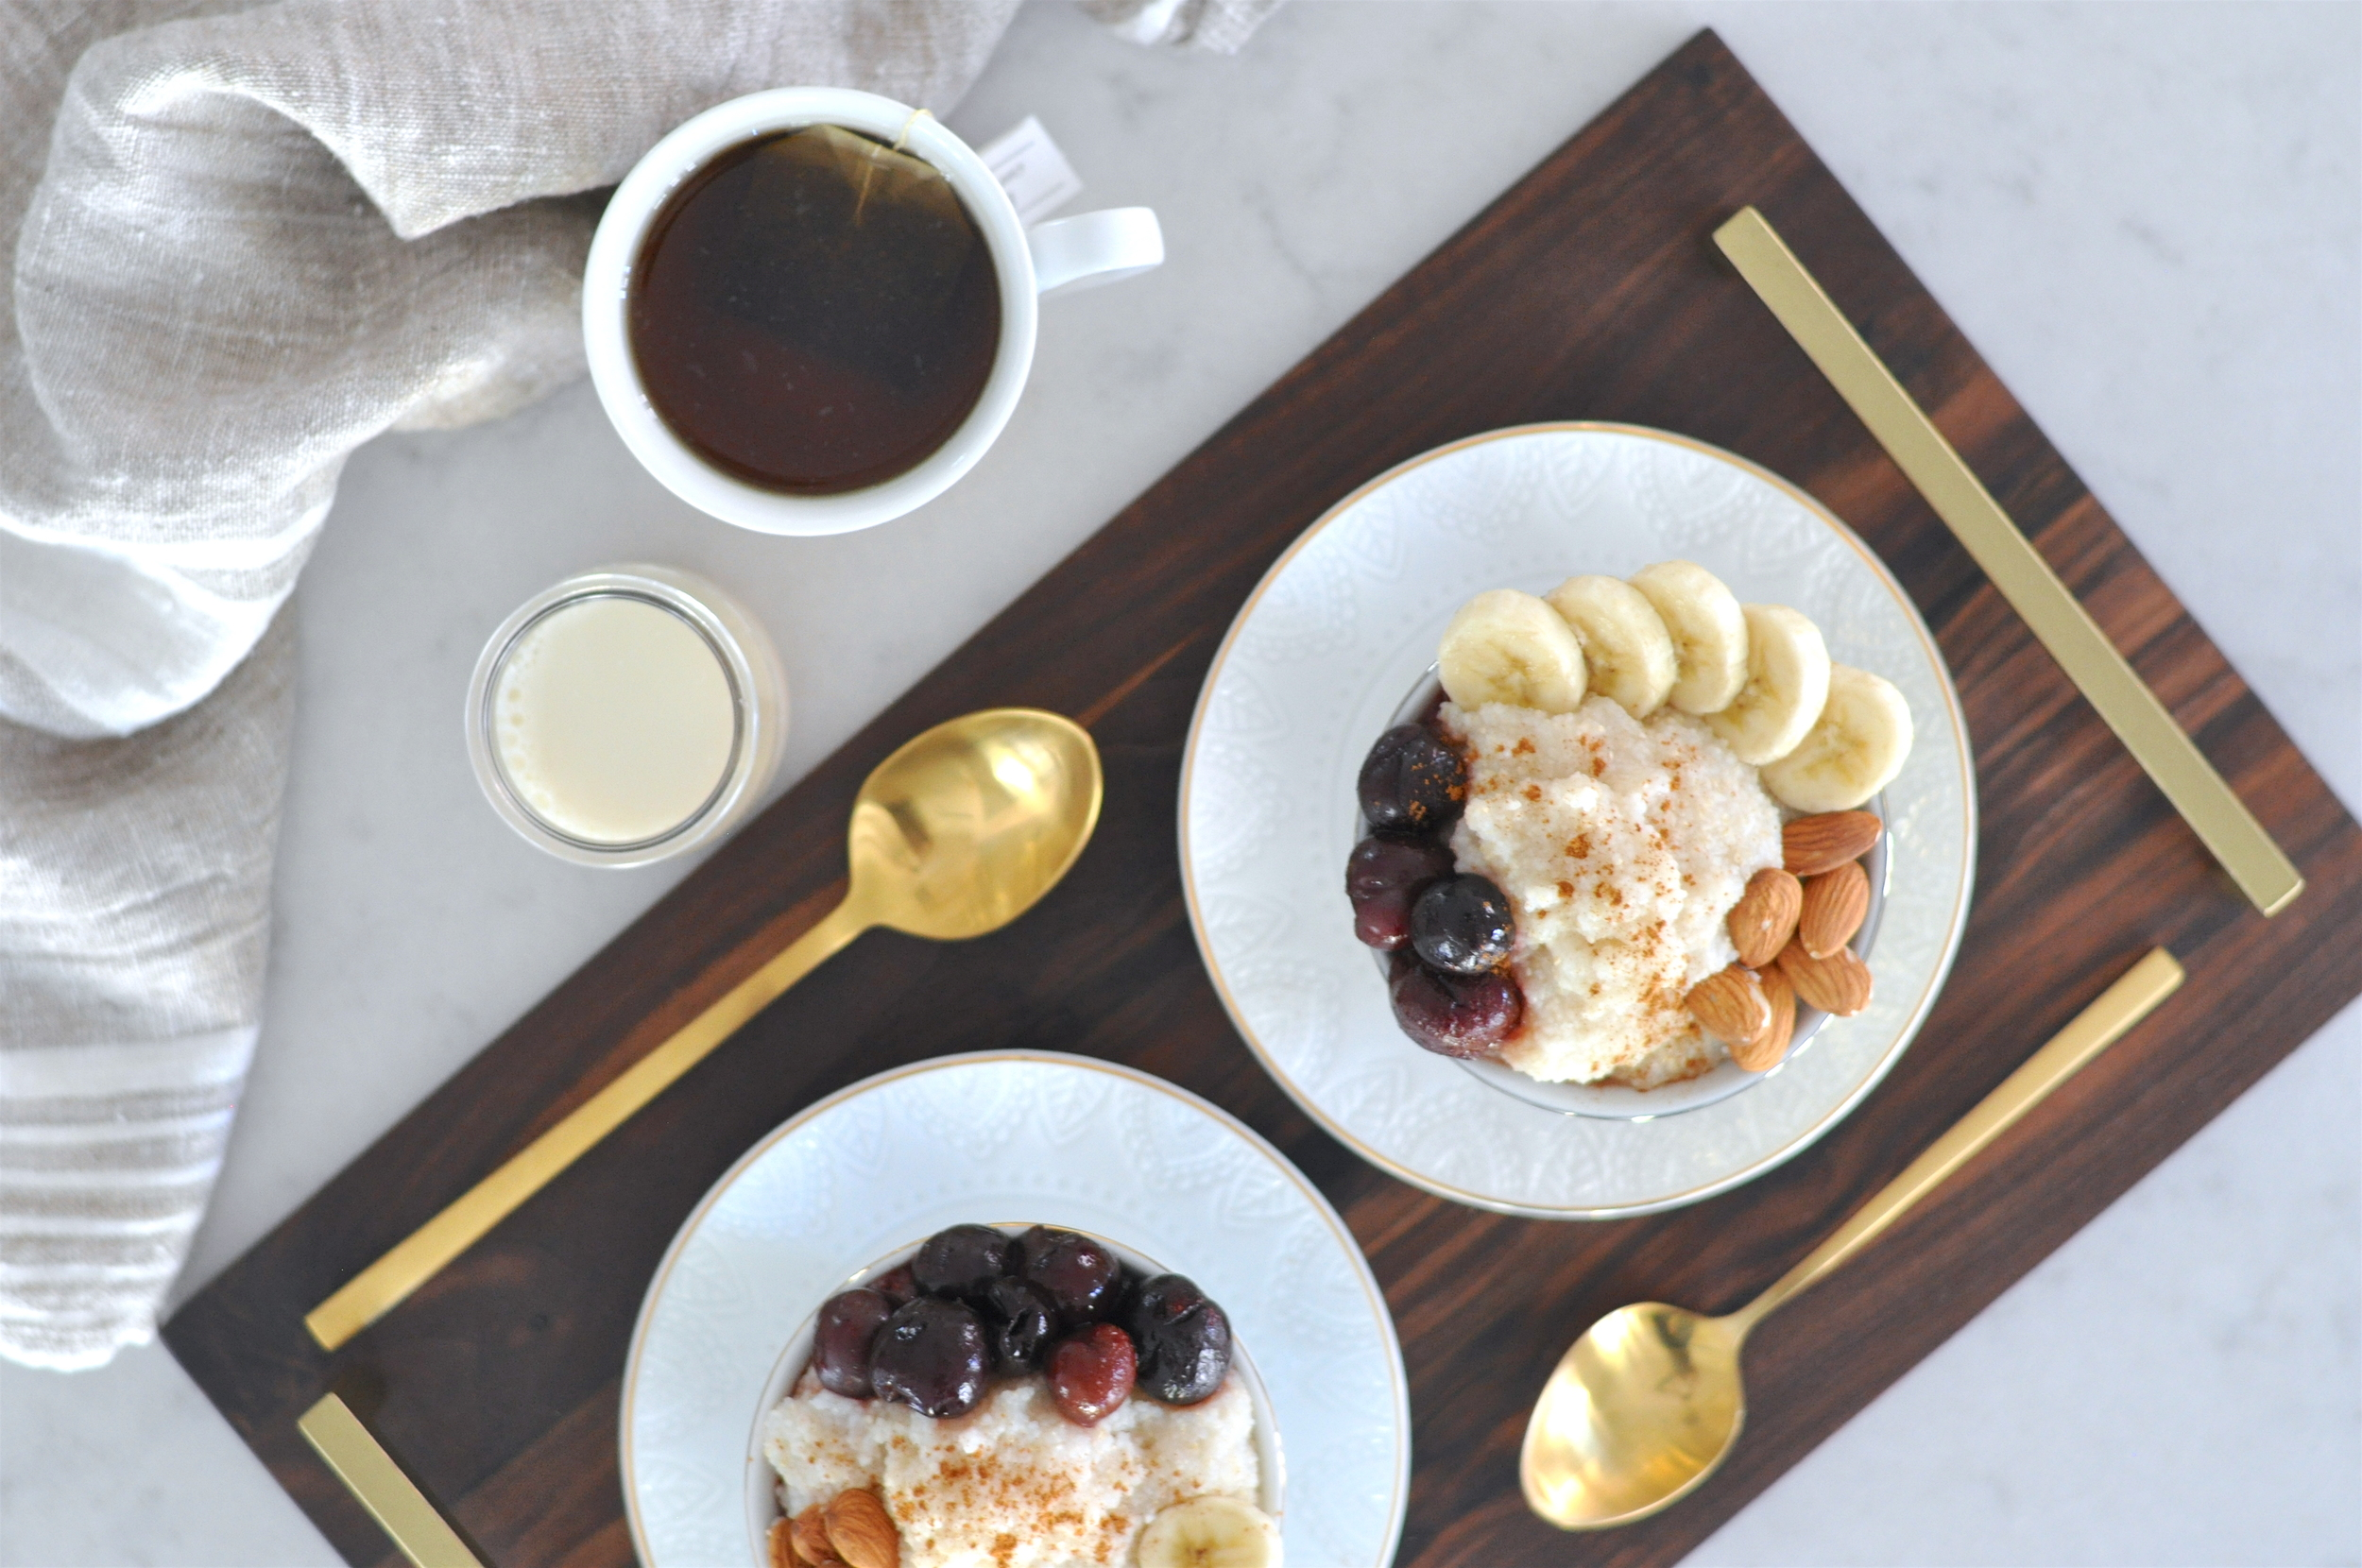 Erin Stanczyk | Lifestyle Design | eat.move.rest. | Three Bears Porridge: The Perfect Late-Night Snack To Help You Sleep Better